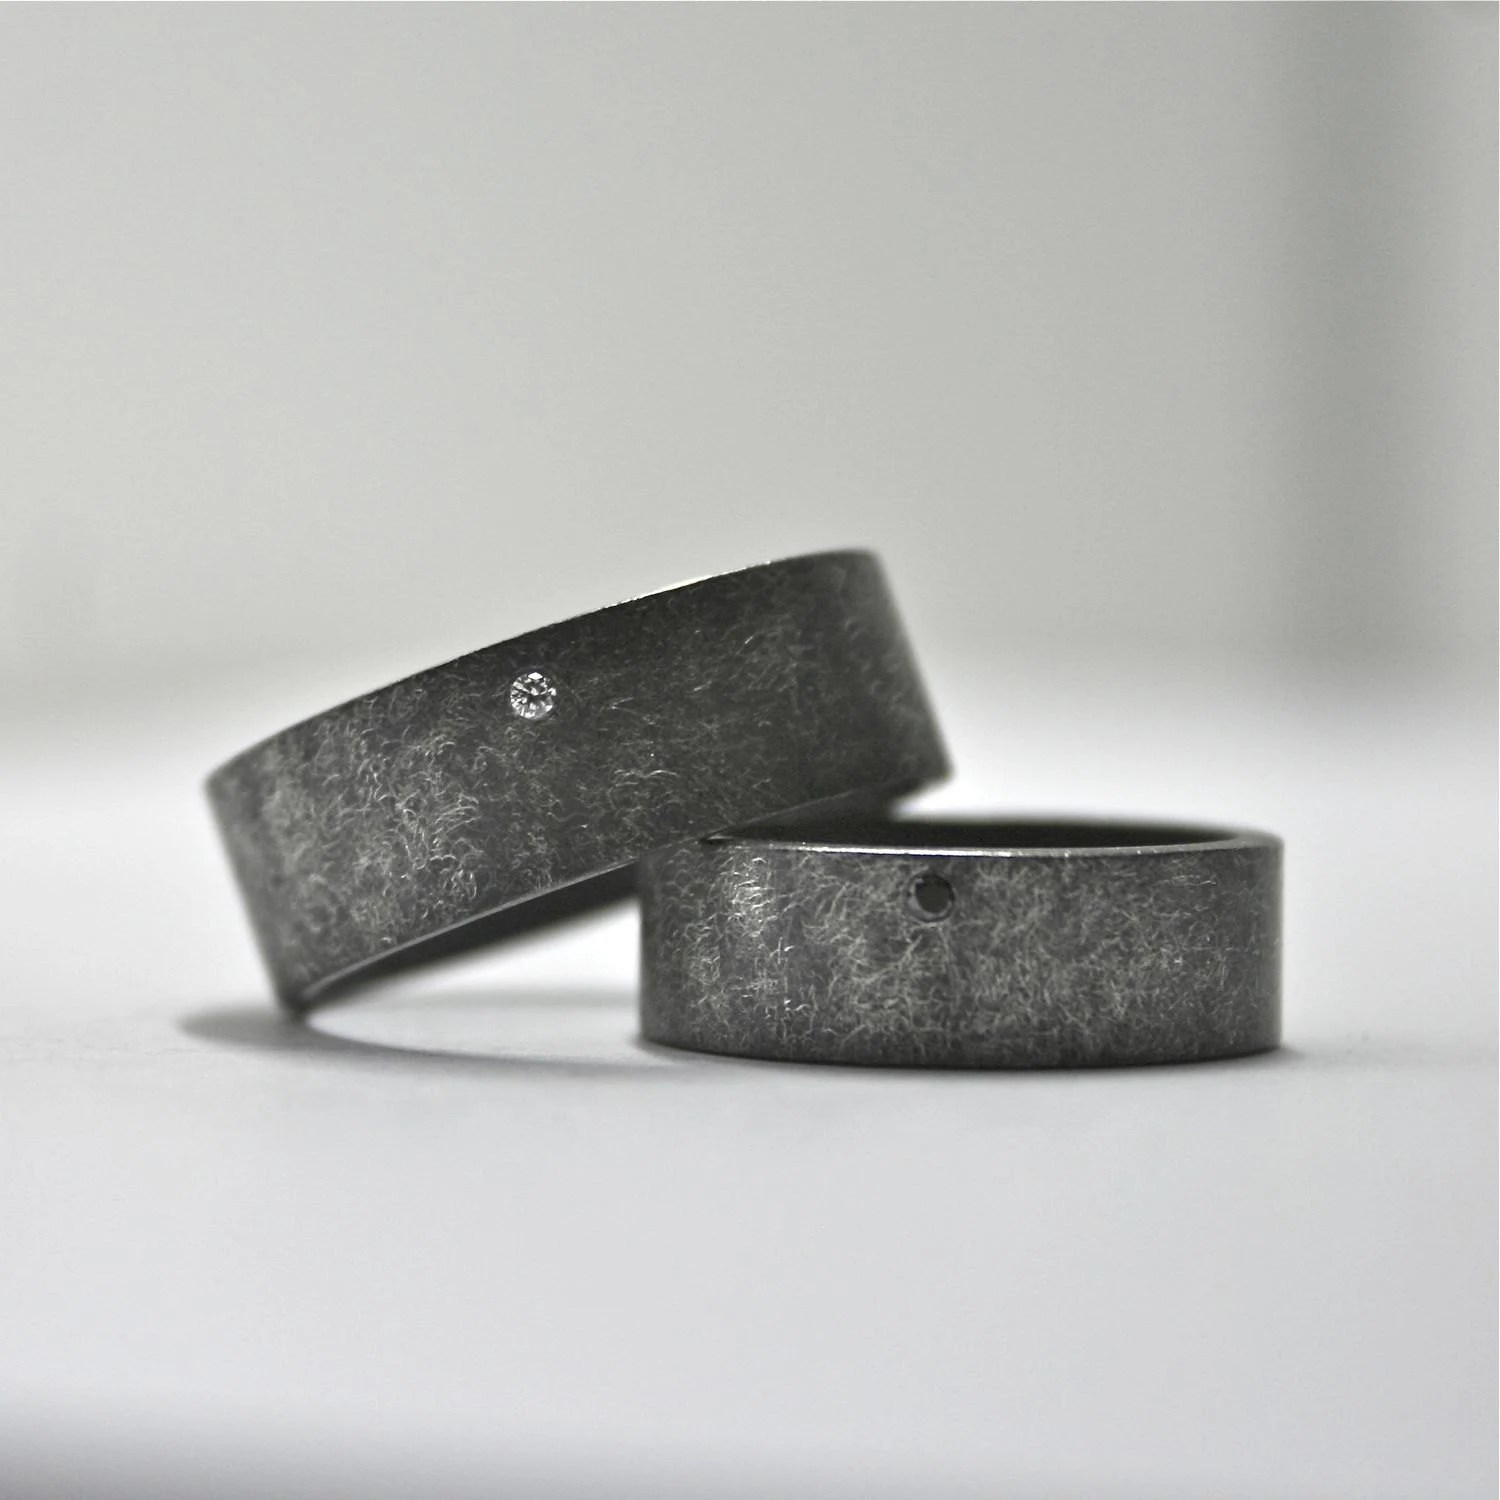 oxidized sterling silver and diamond jcpenney jewelry wedding rings zoom